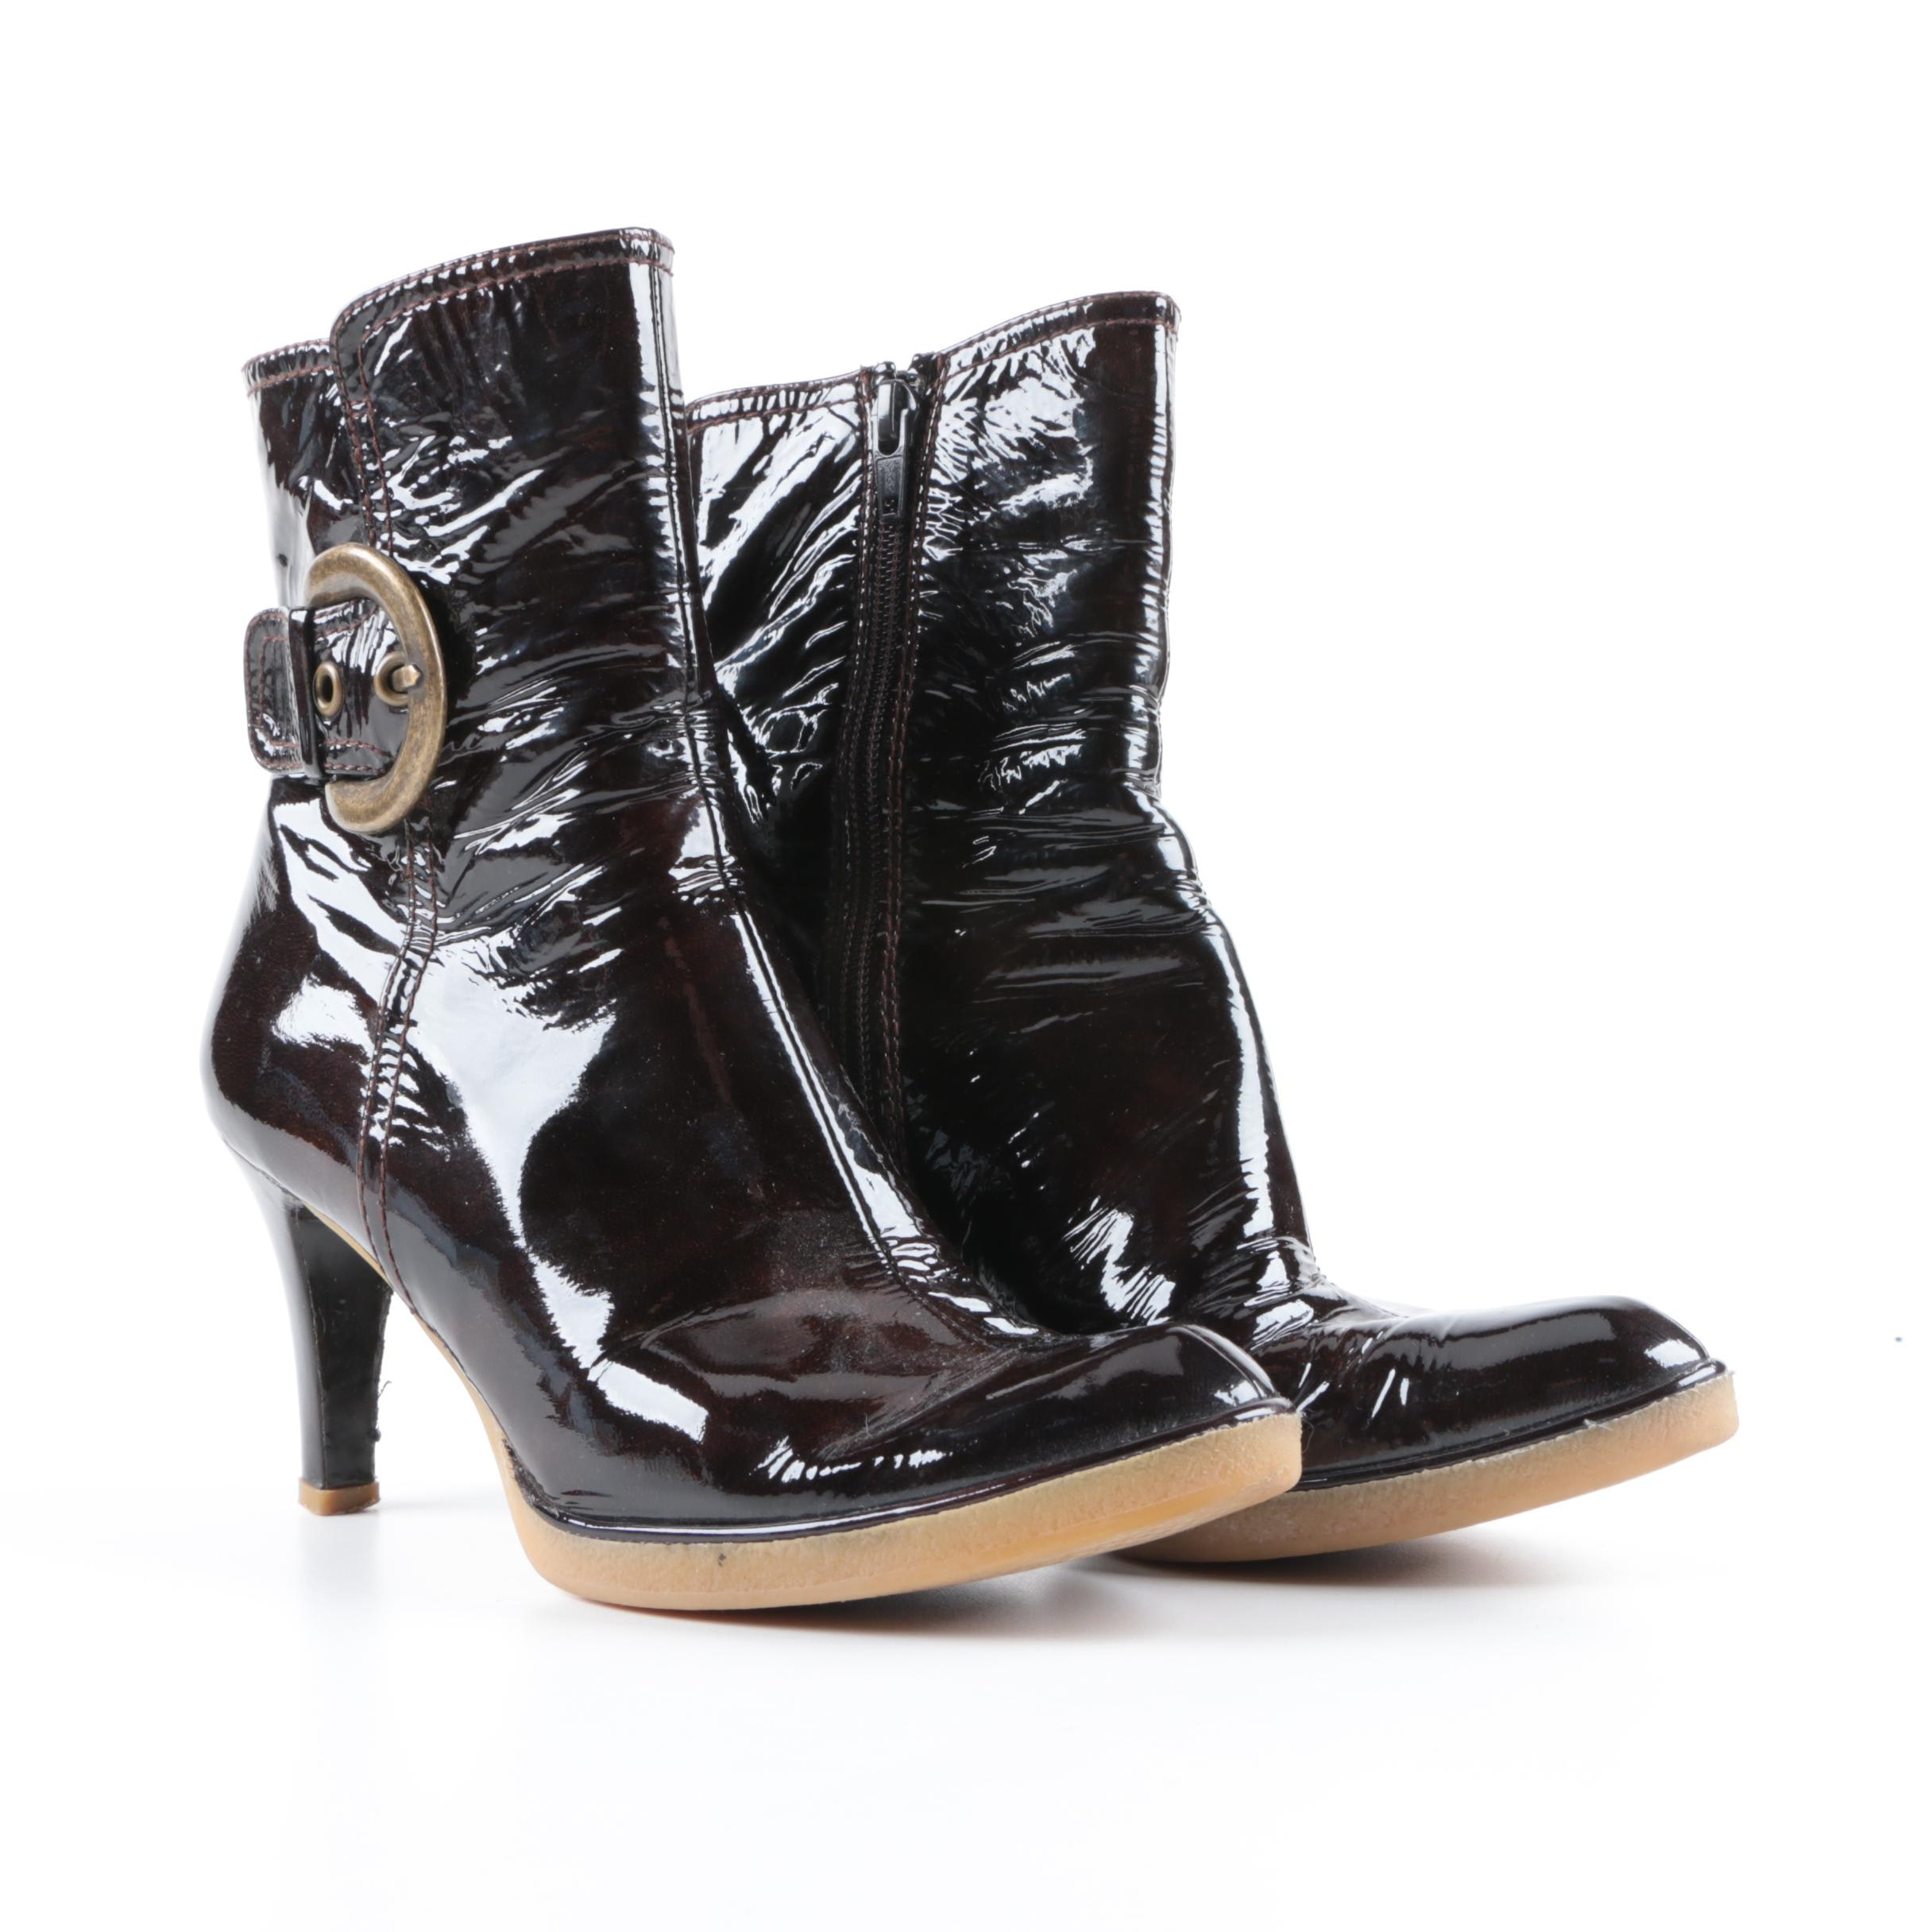 Stuart Weitzman Mahogany Patent Leather High Heeled Boots